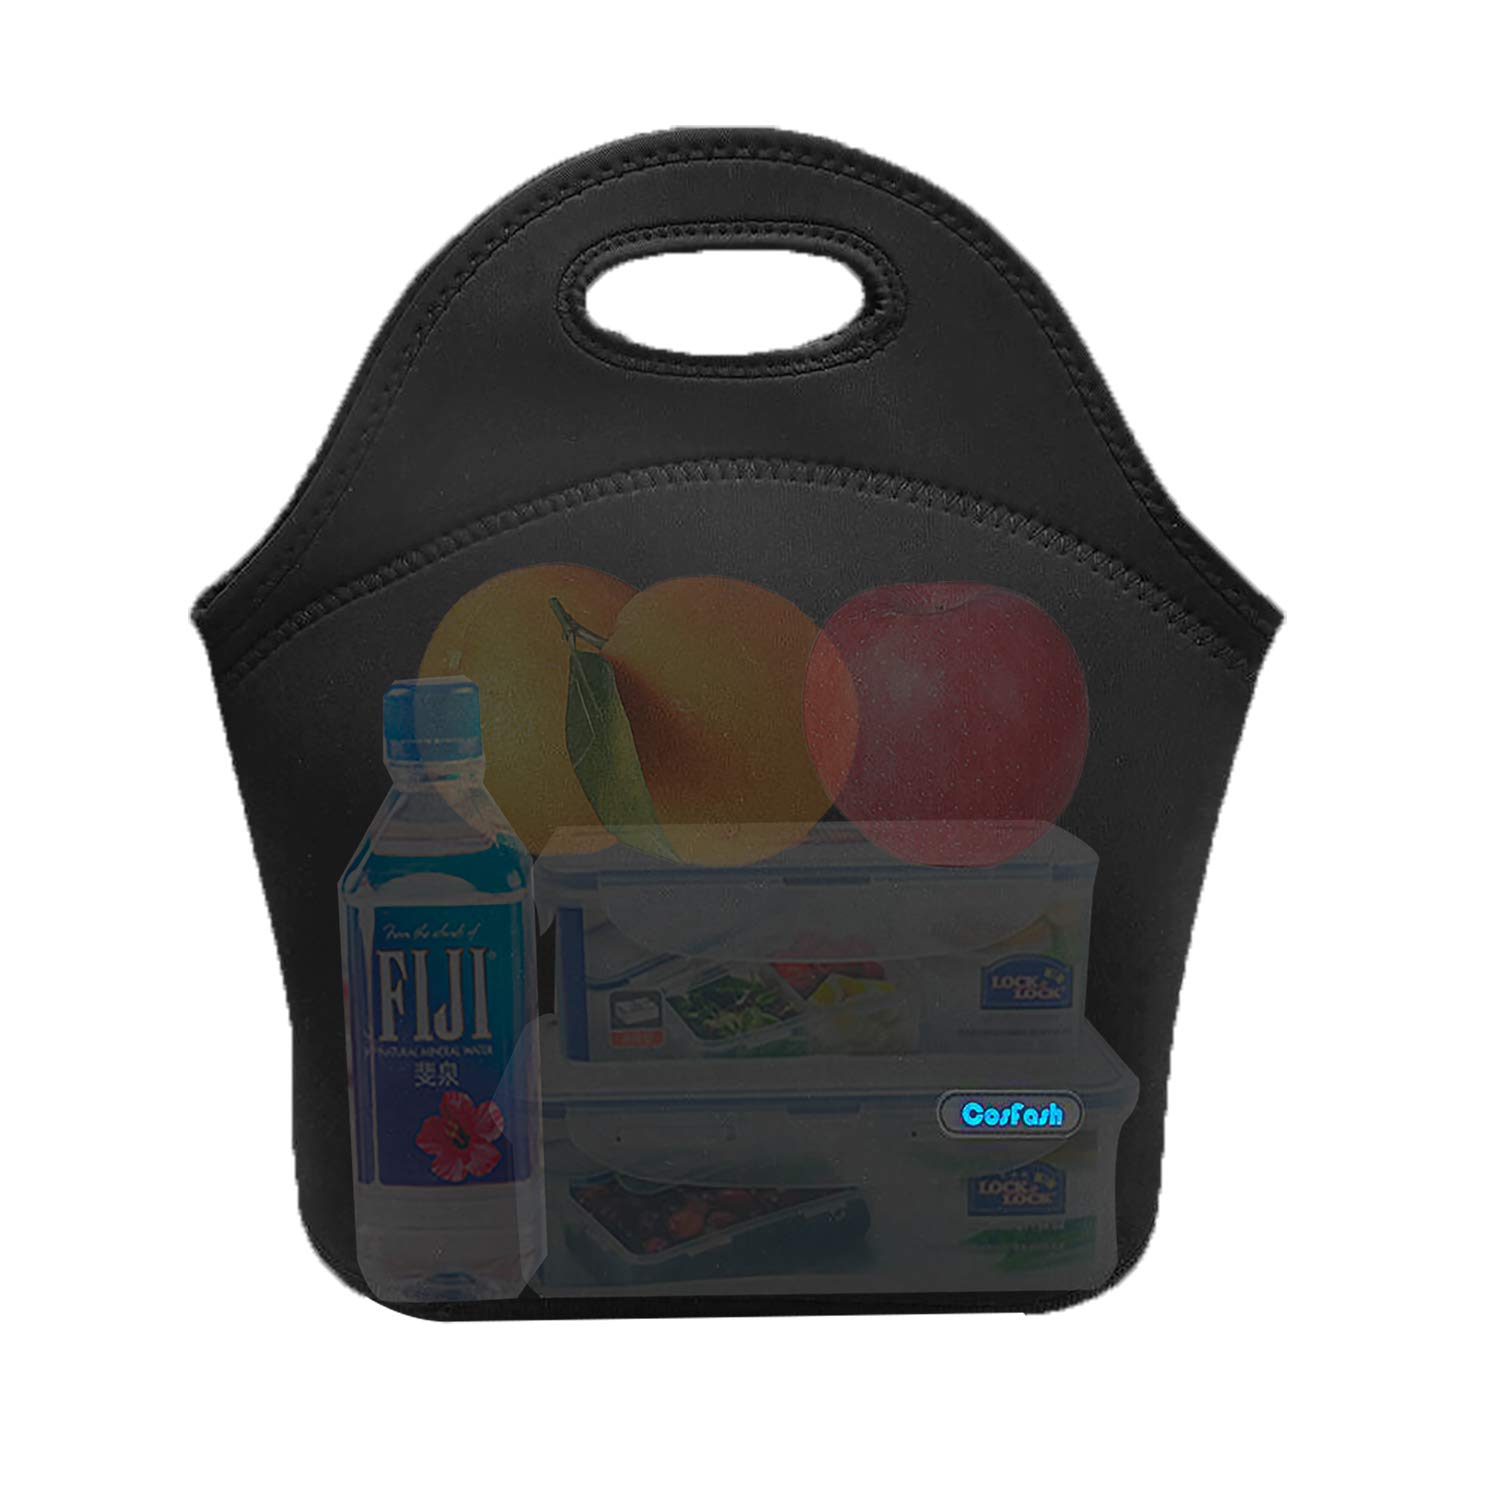 Cosfash Neoprene Lunch Tote Insulated Reusable Picnic Lunch Bags Boxes for Men Women Children Kid Adults Toddler Nurses (Black)